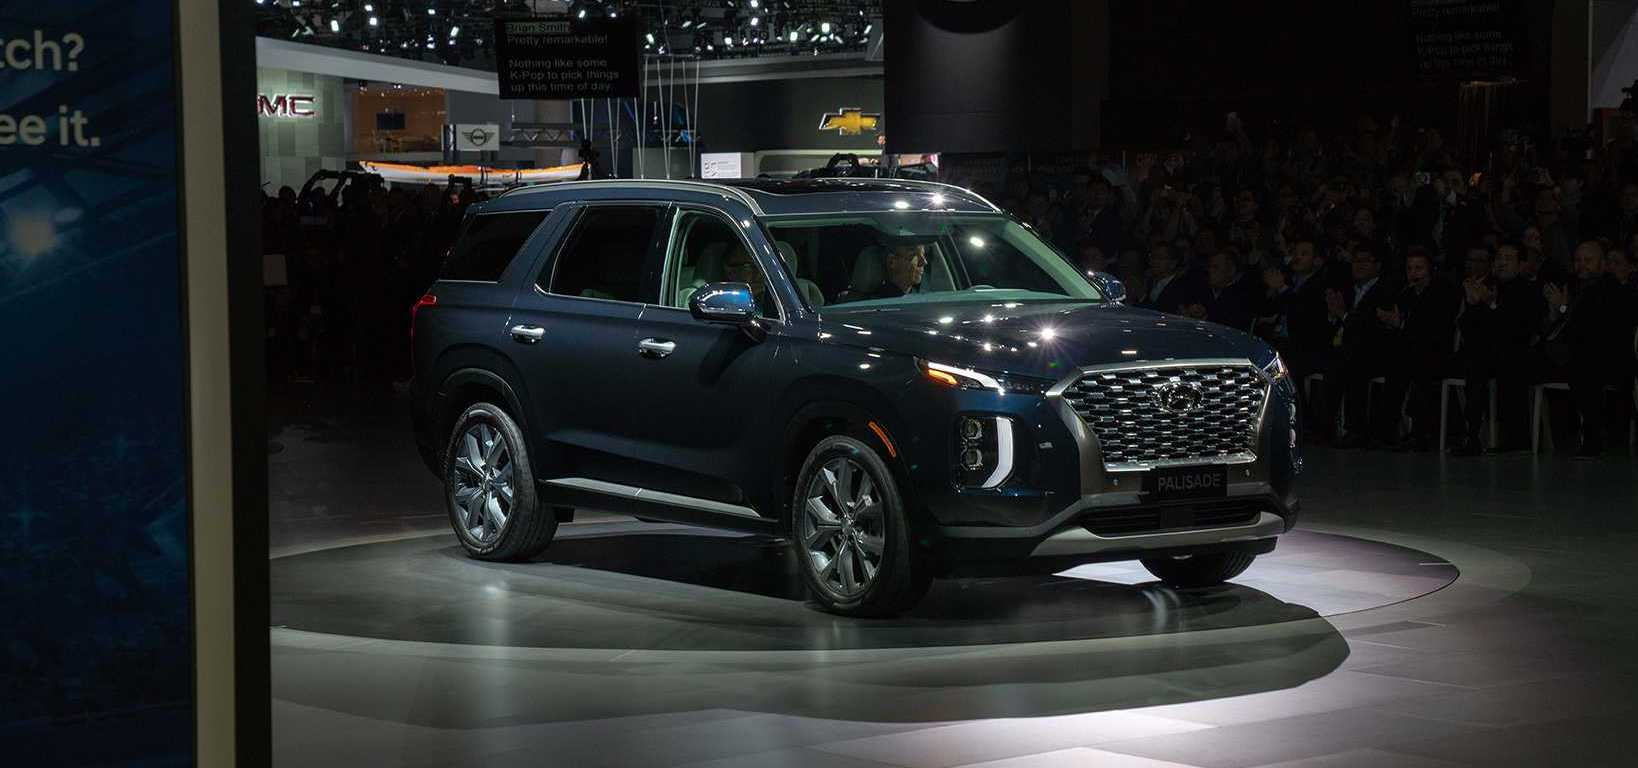 2020 Hyundai Palisade Debuts With Bold Design And 8 Seats